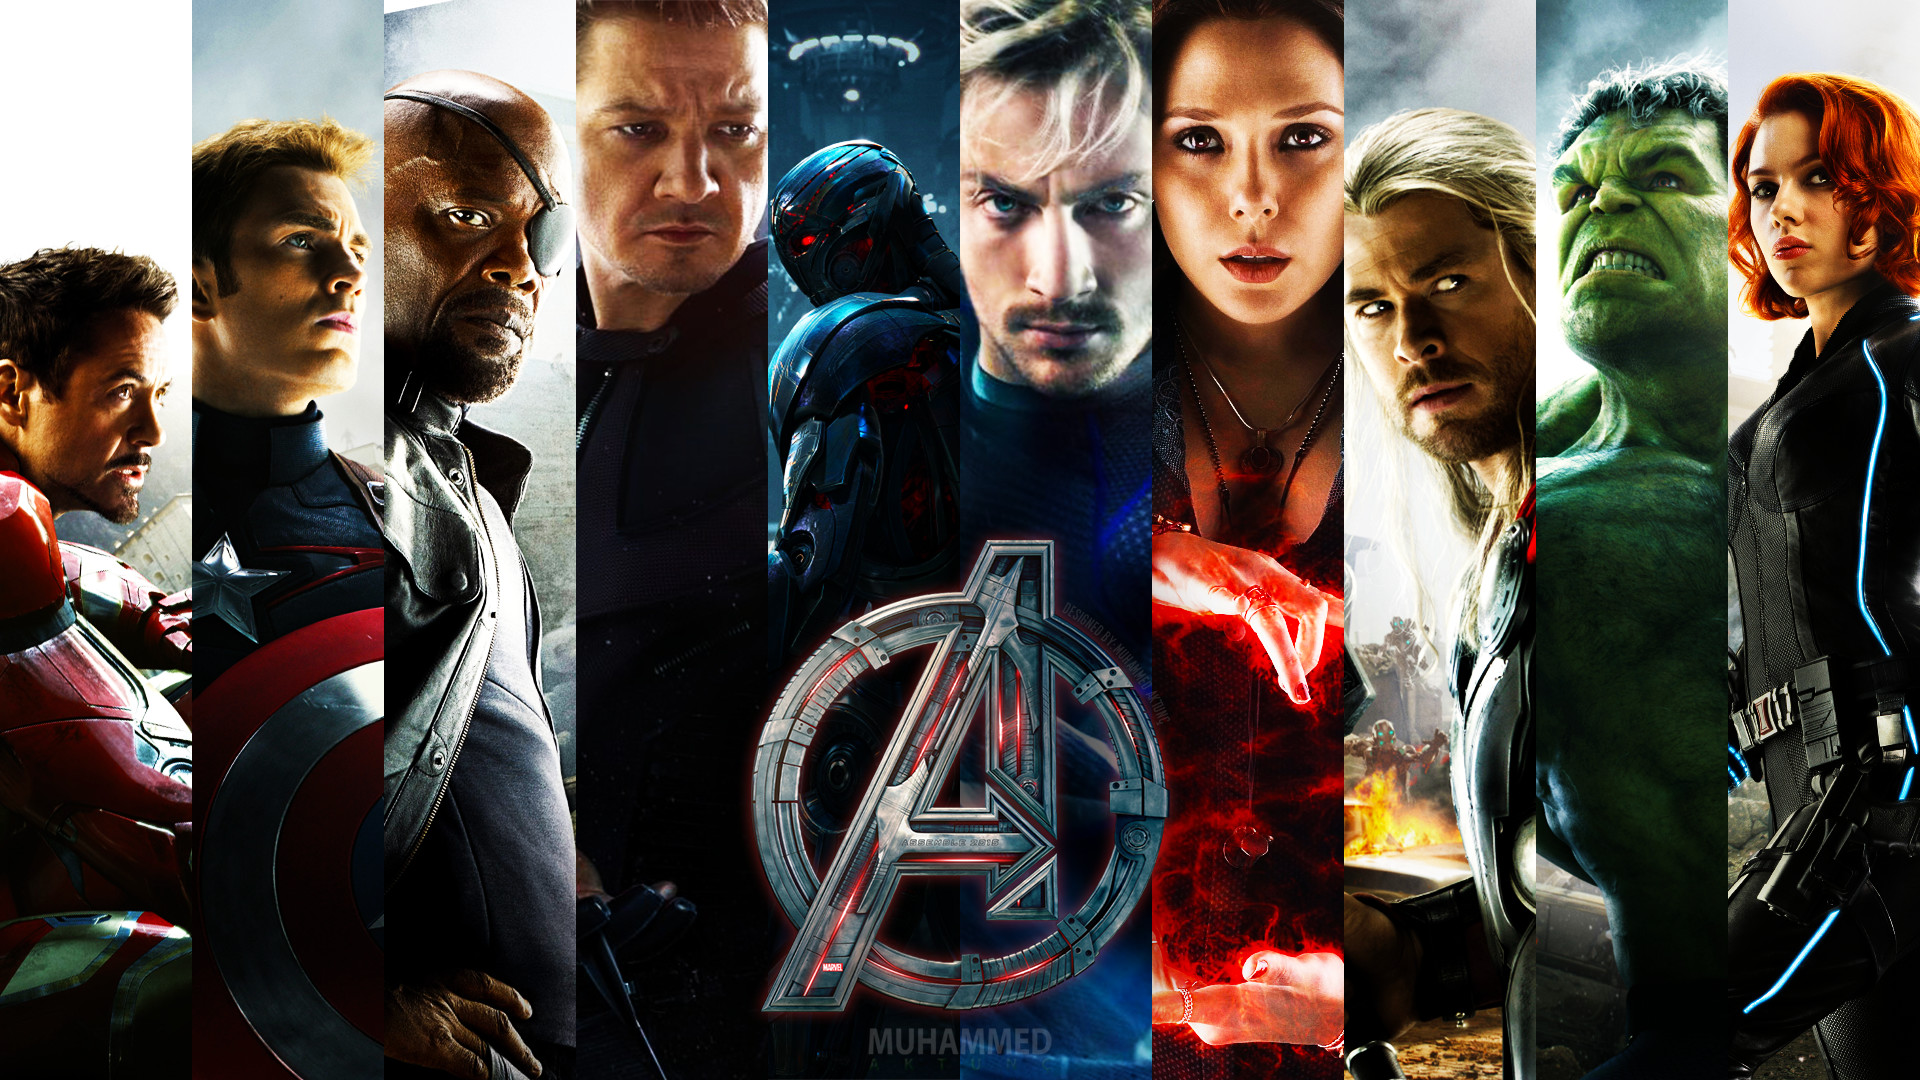 Download Wallpaper Avengers age of ultron, Marvel …   Download  Wallpaper   Pinterest   Avengers wallpaper, Wallpaper and Wallpaper  downloads